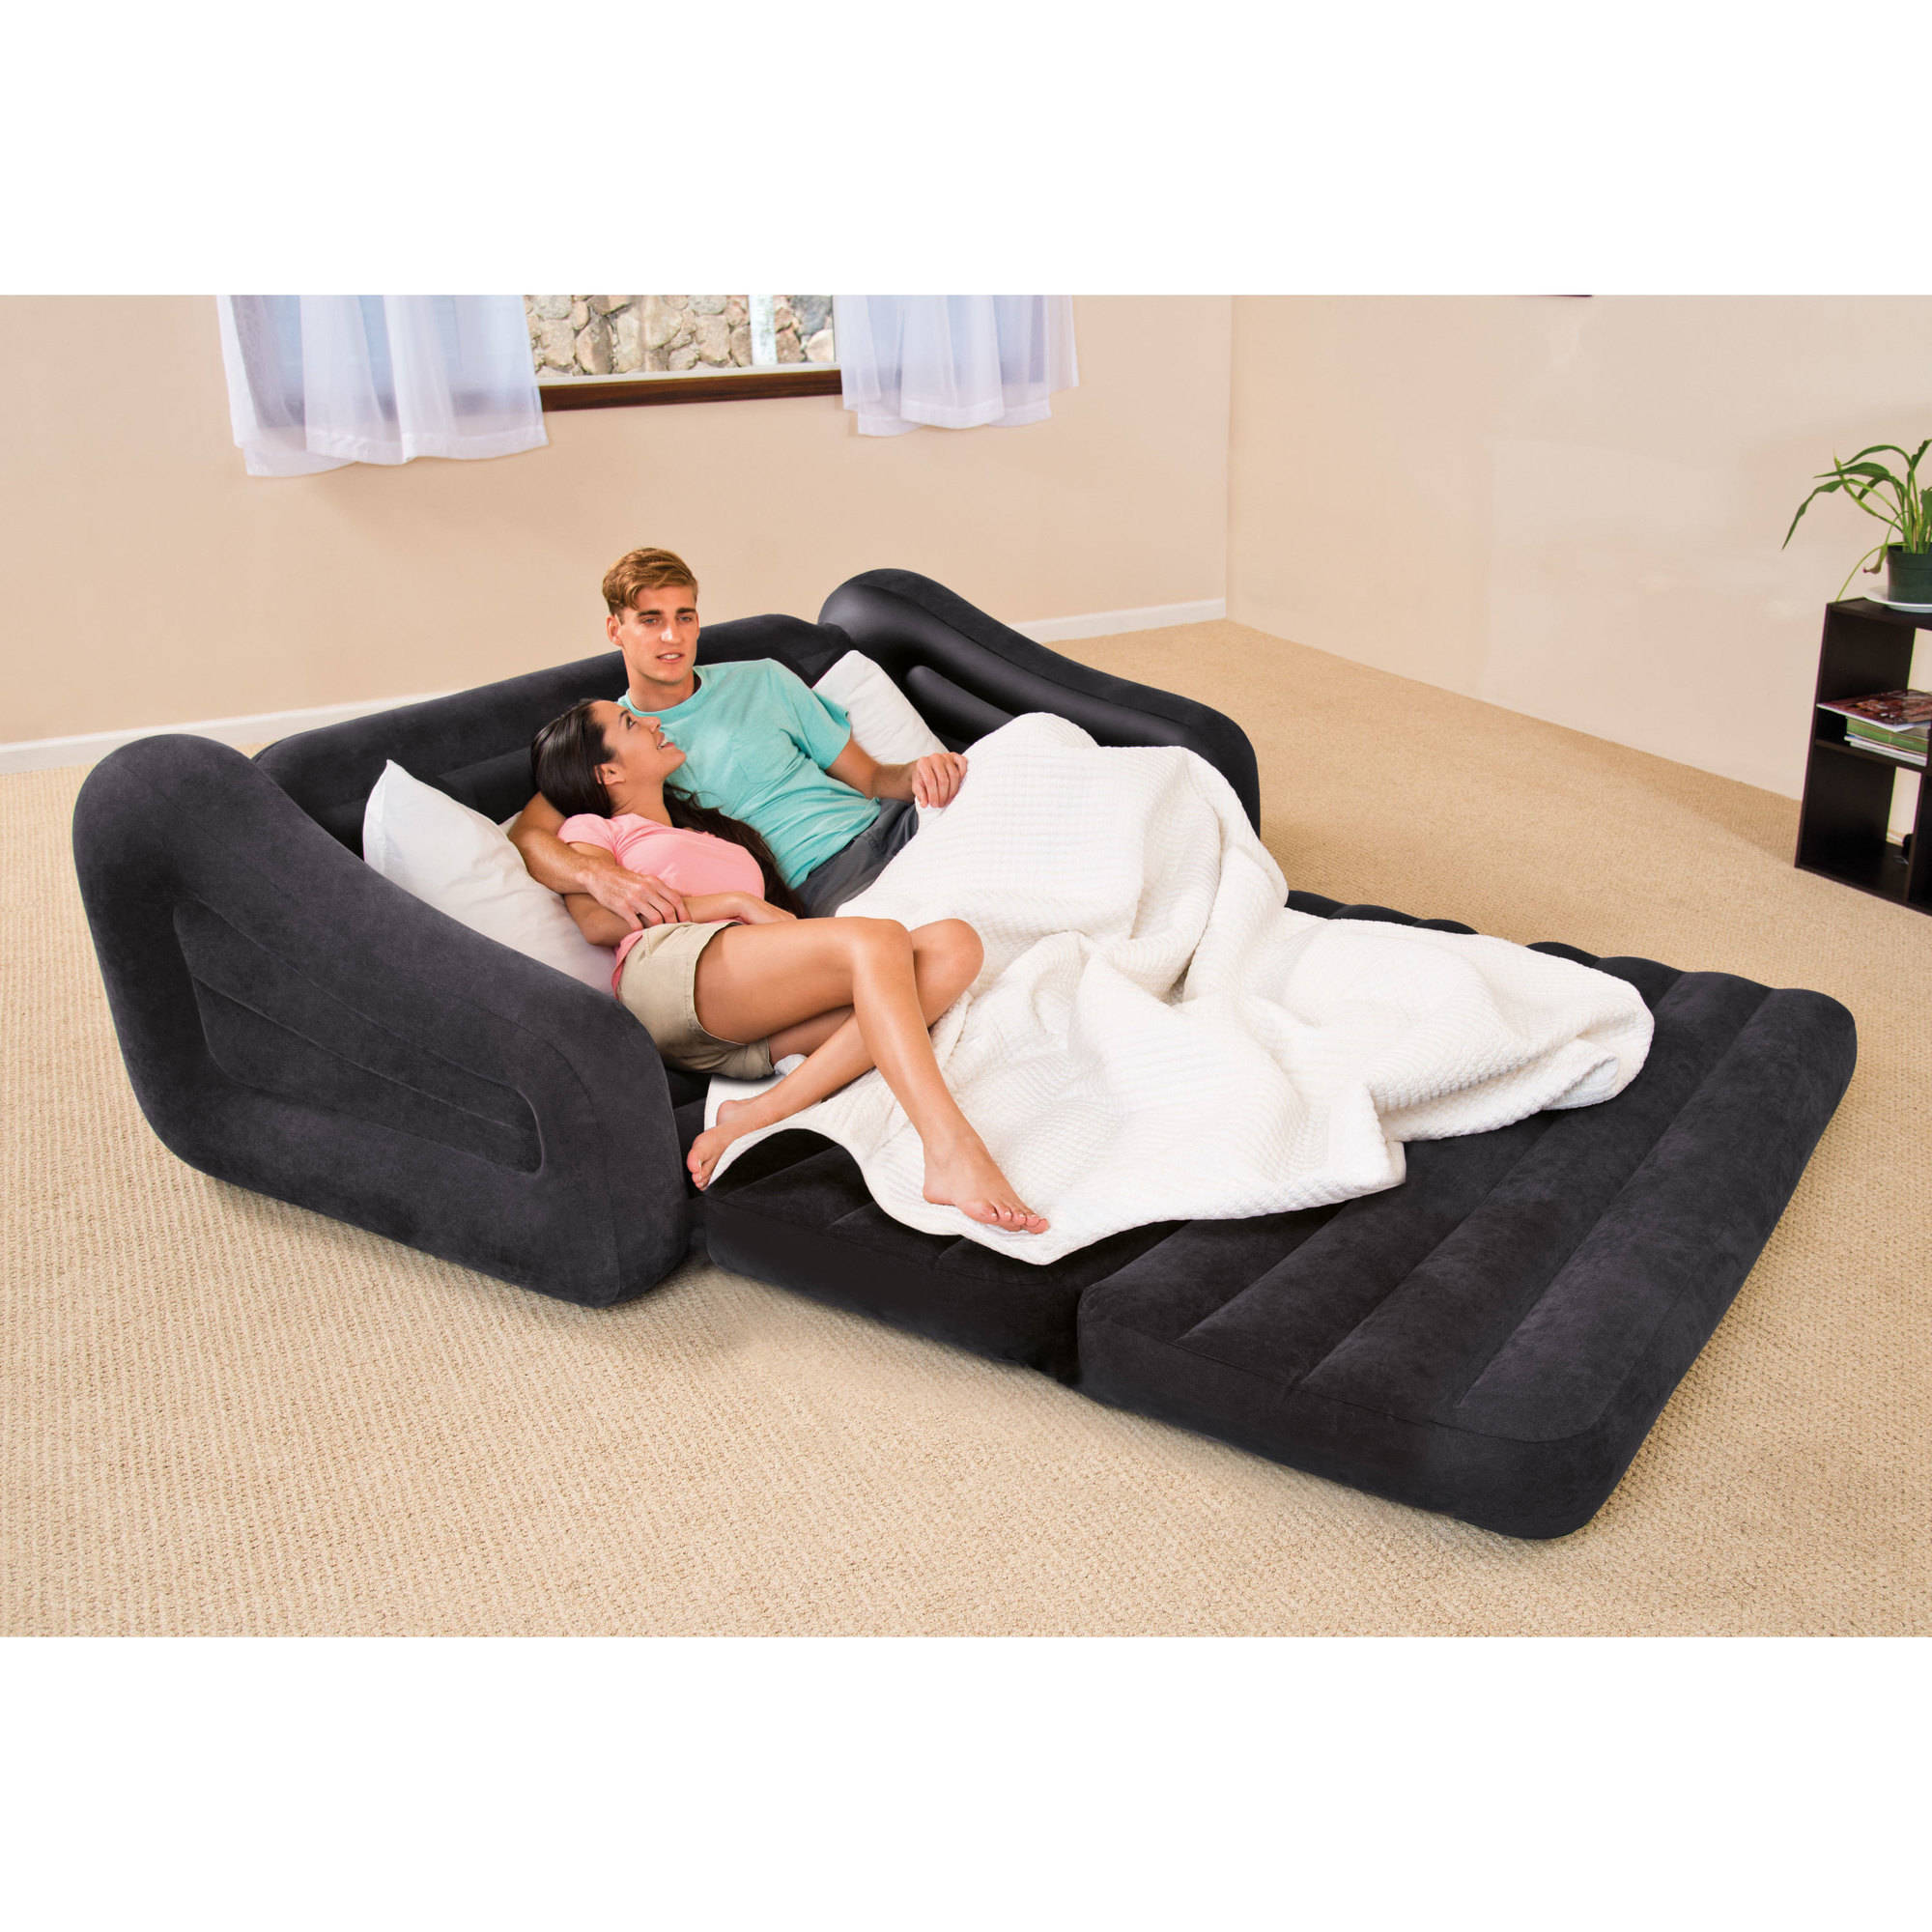 Pictures of sofabed intex queen inflatable pull out sofa bed xdoyrtv